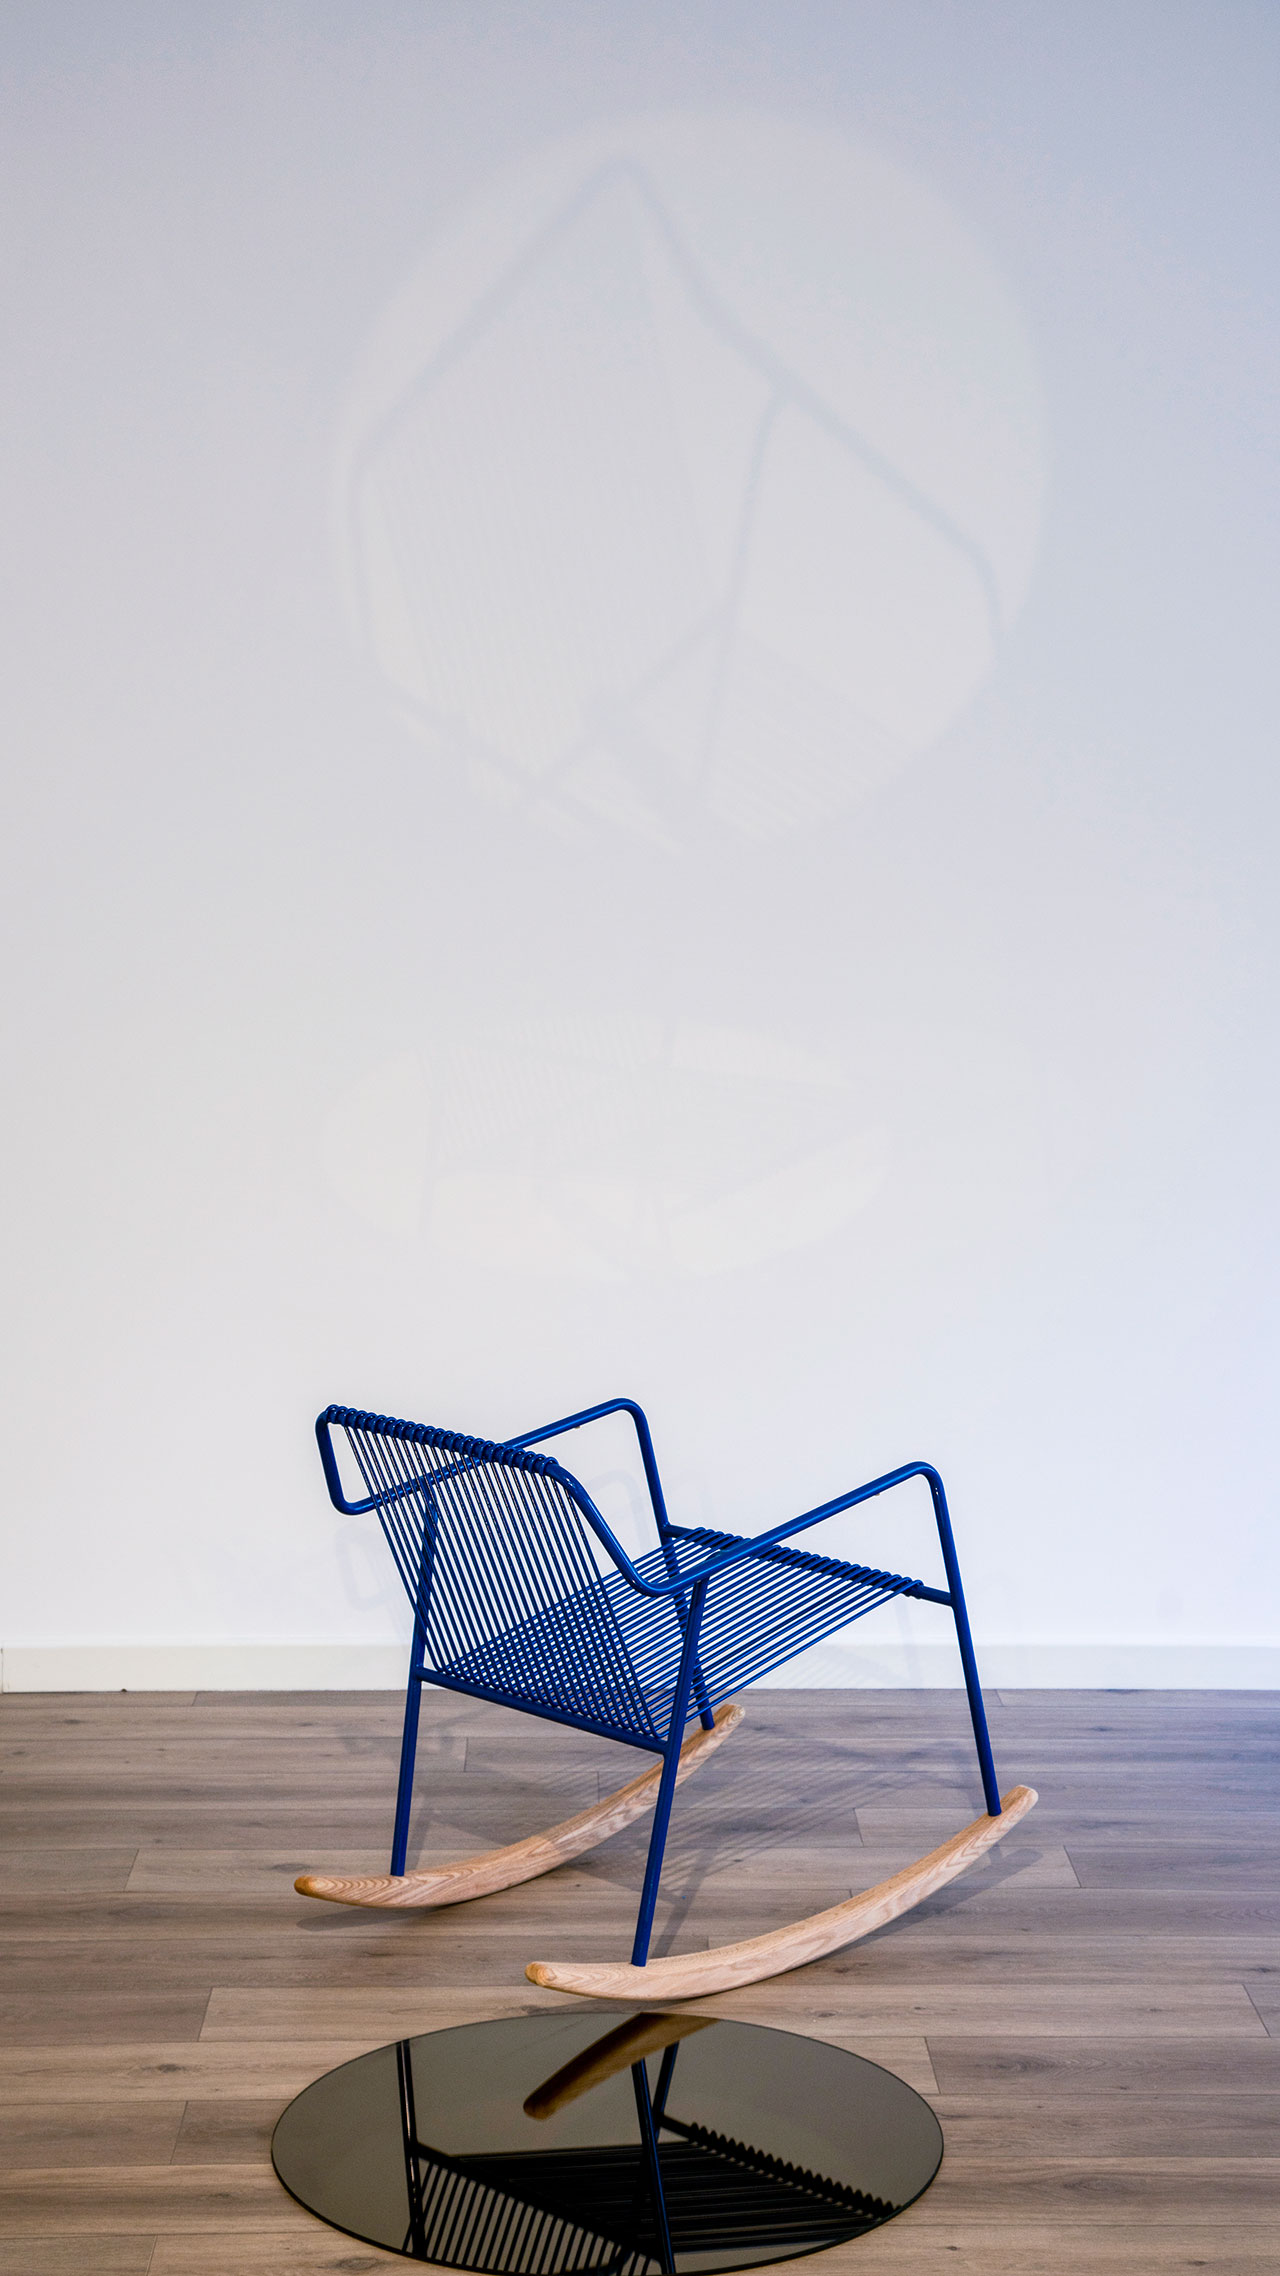 Mike rocking chair by Local Industries. Exhibition view at Dar El Nimer during Beirut Design Week 2018. © 2018 Local Industries